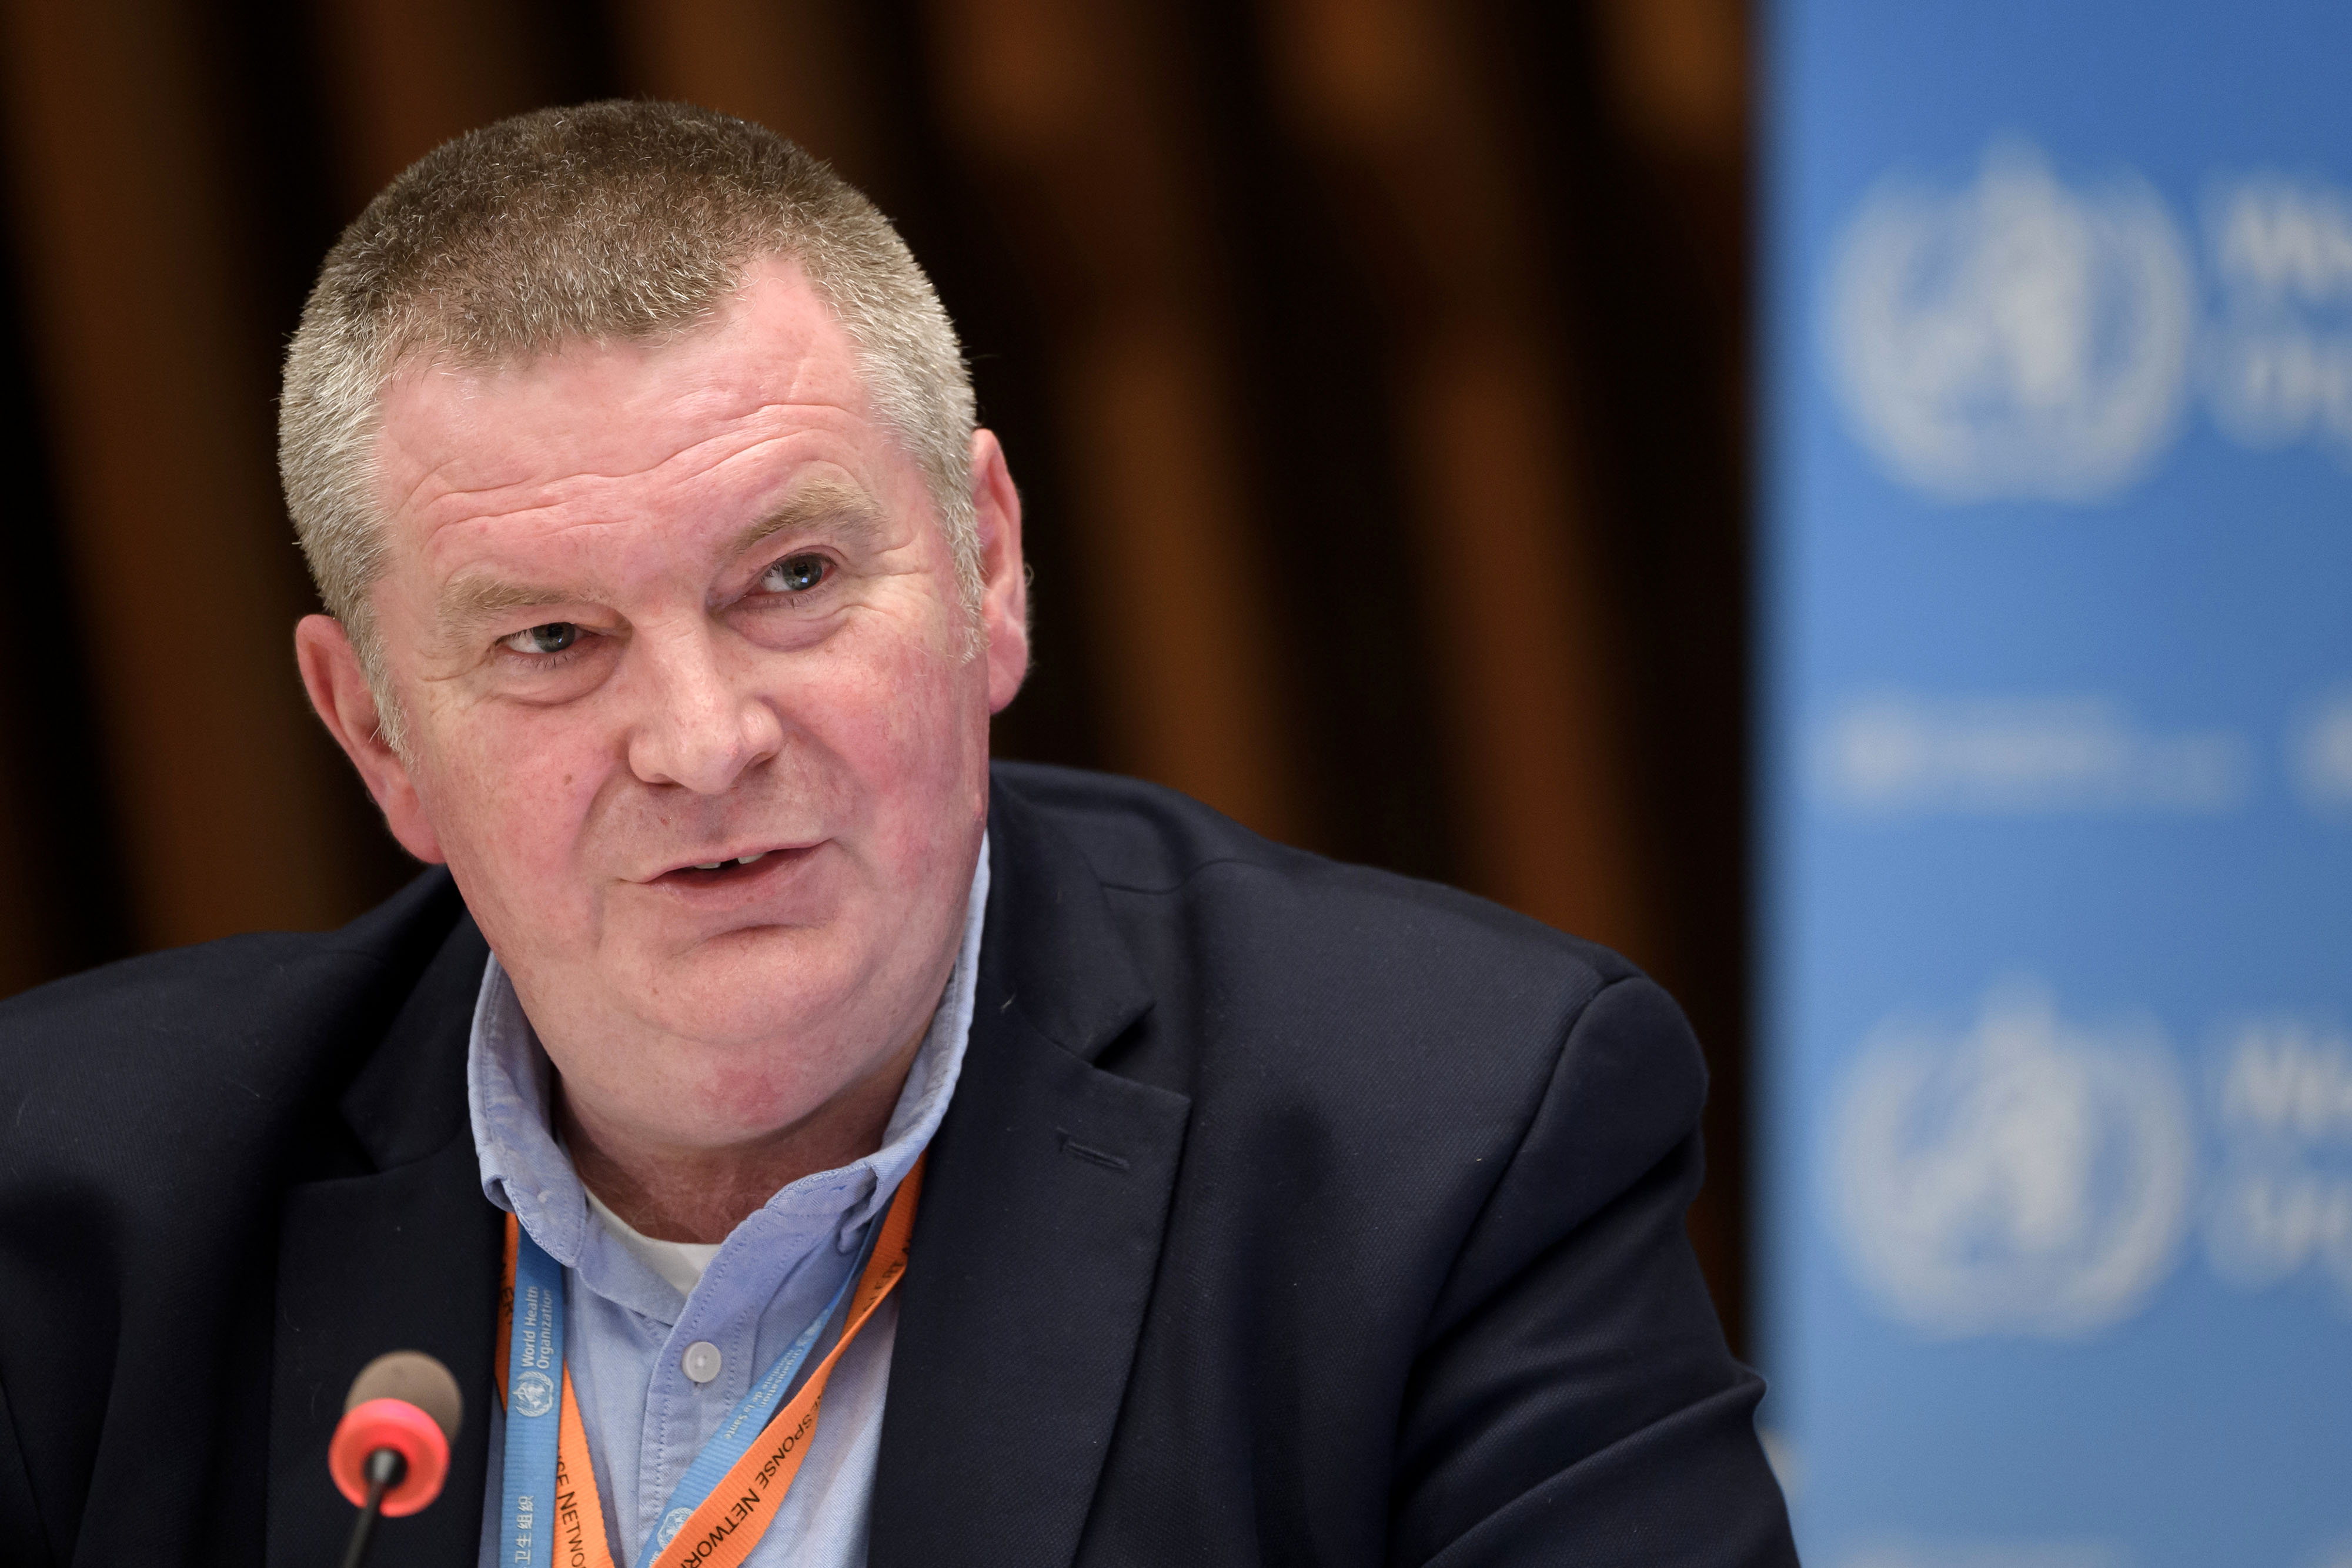 Dr. Mike Ryan, executive director of the World Health Organization's health emergencies program, attends a press conference in Geneva, Switzerland, on July 3.